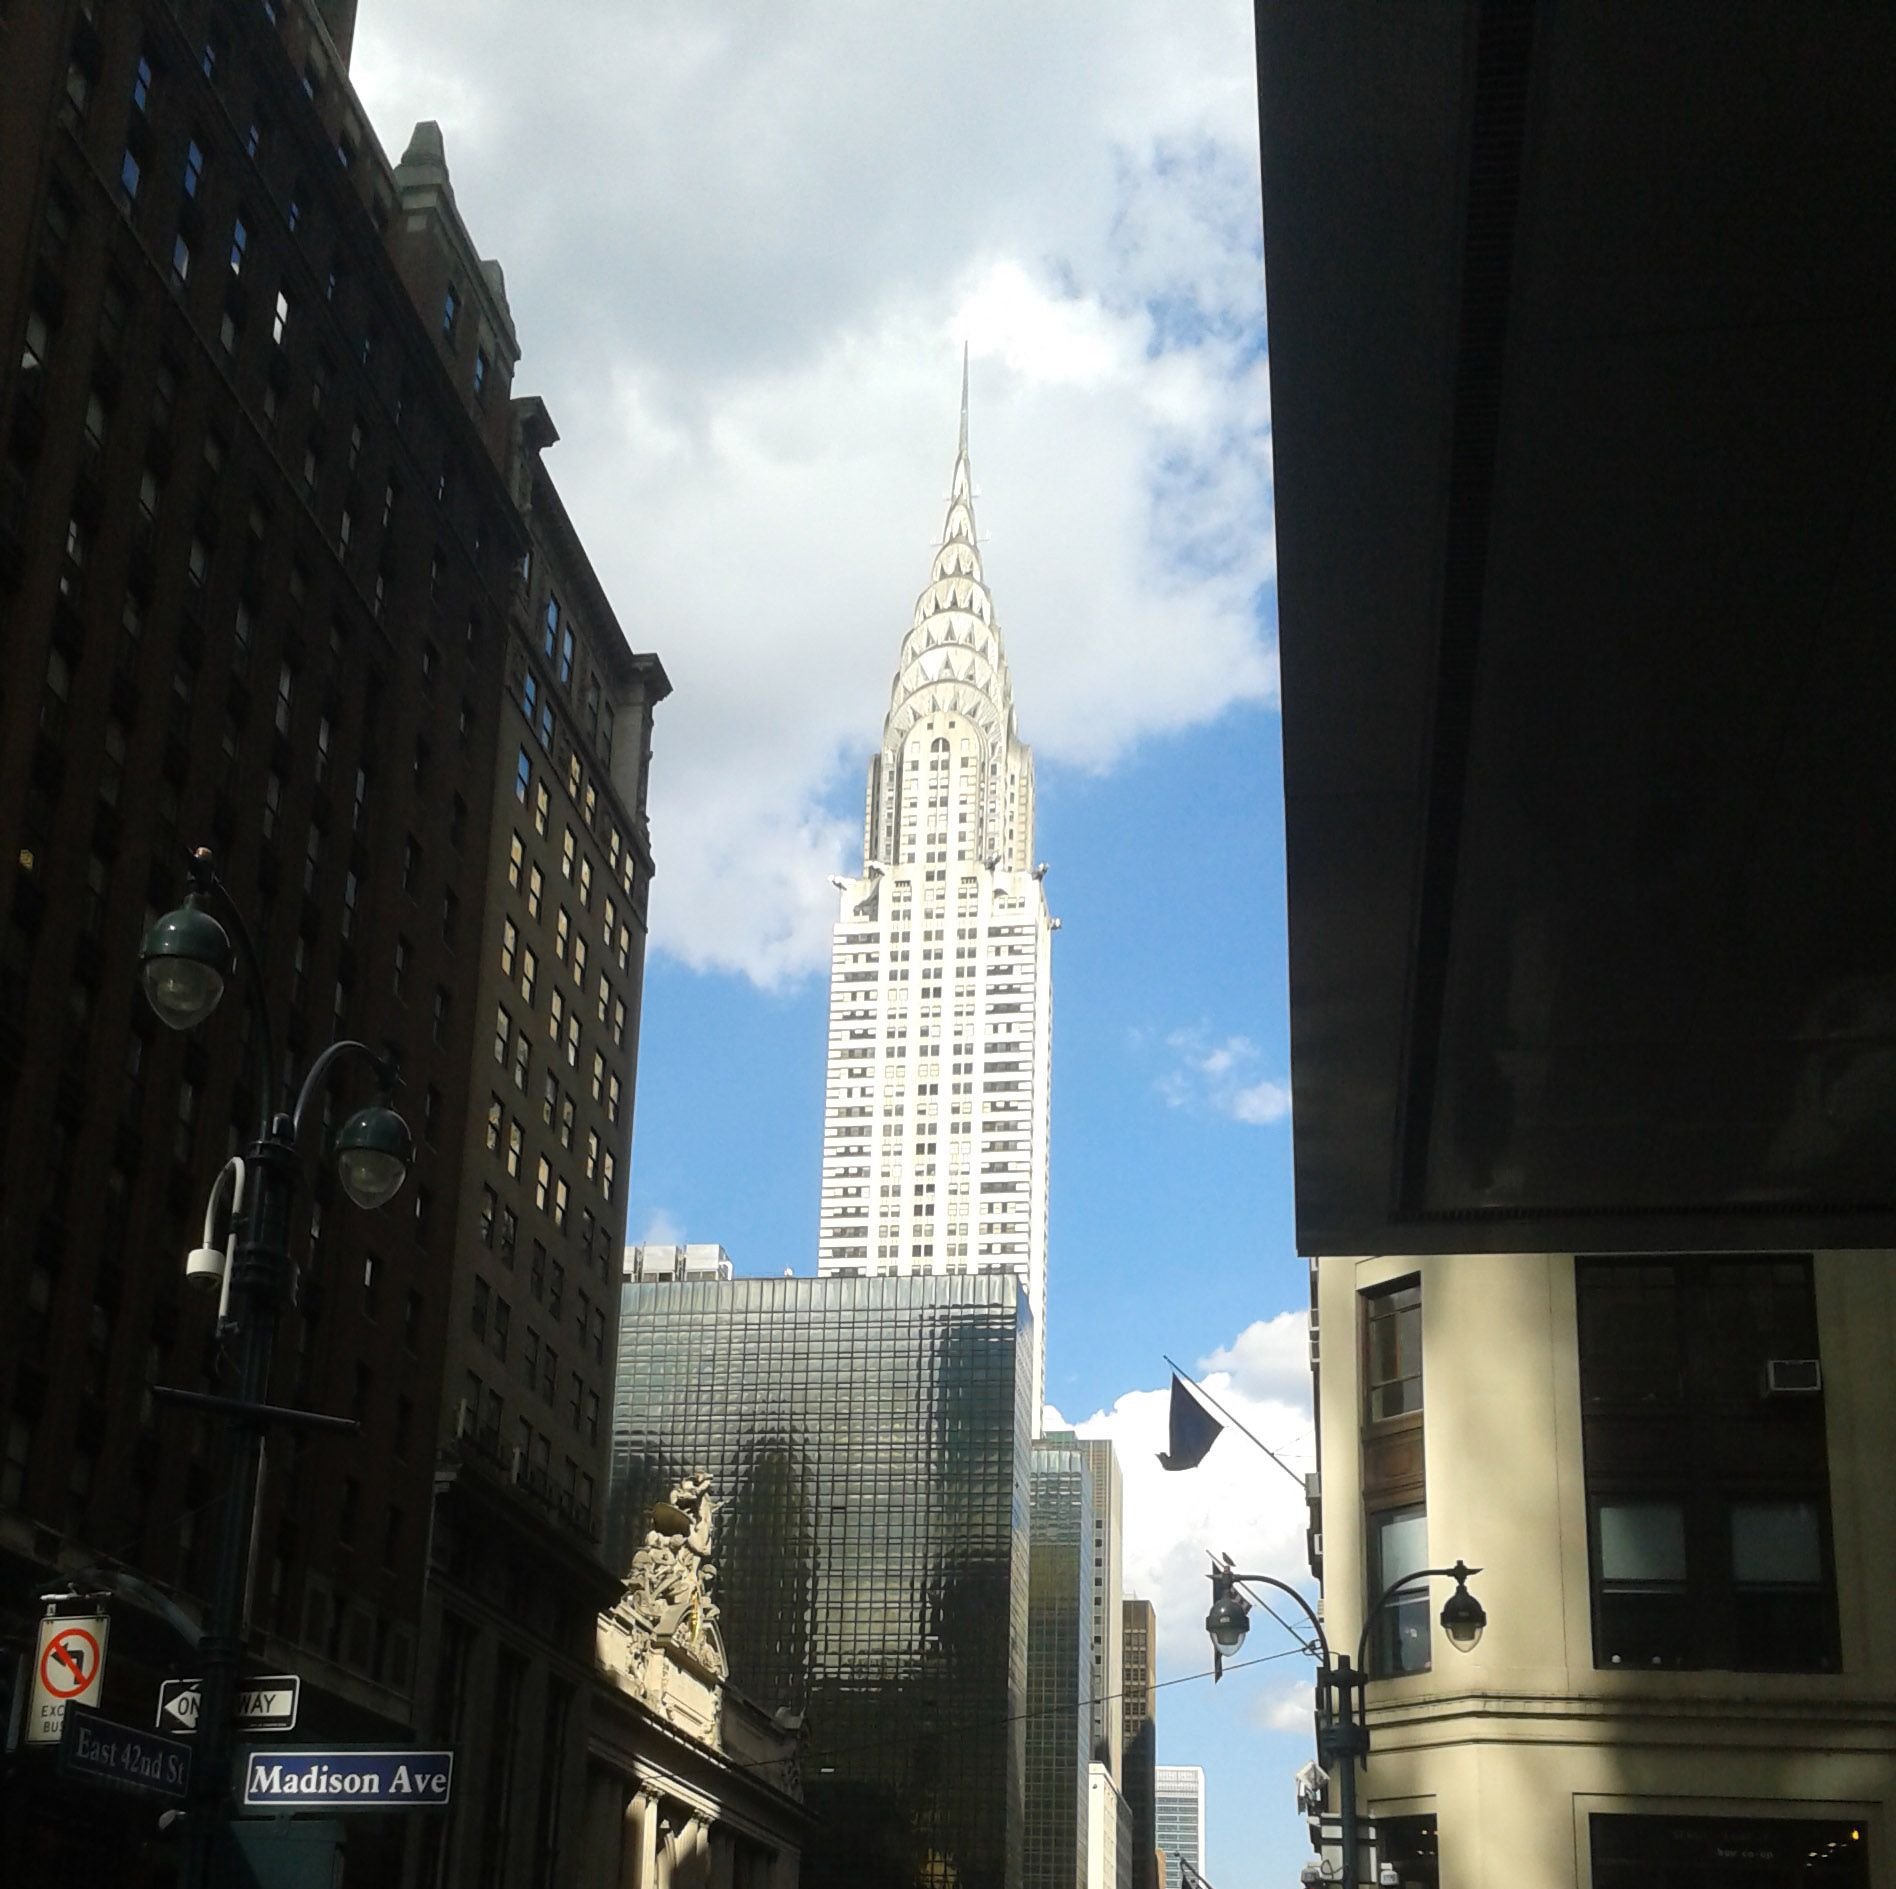 A view of the Chrysler Building from Madison Avenue.